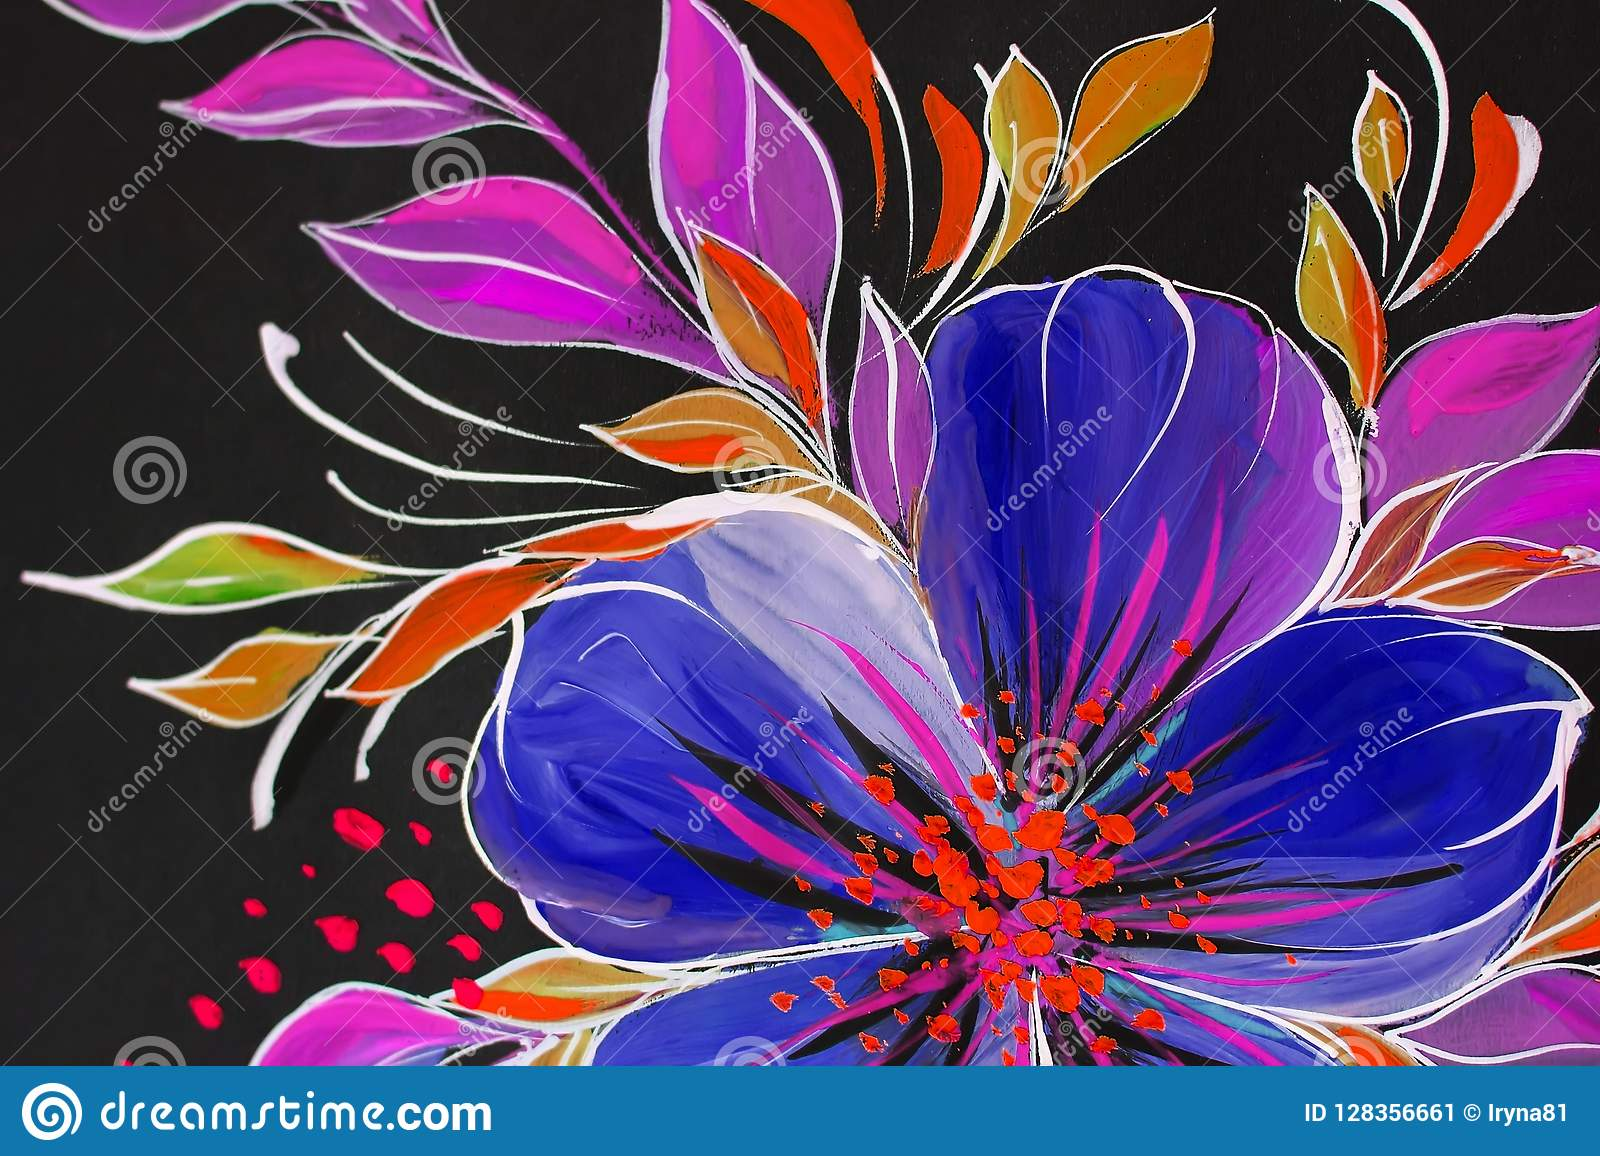 Flowers Illustration On A Black Background Oil Painting Impressionism Style Flower Painting Canvas Stock Illustration Illustration Of Floral Banner 128356661